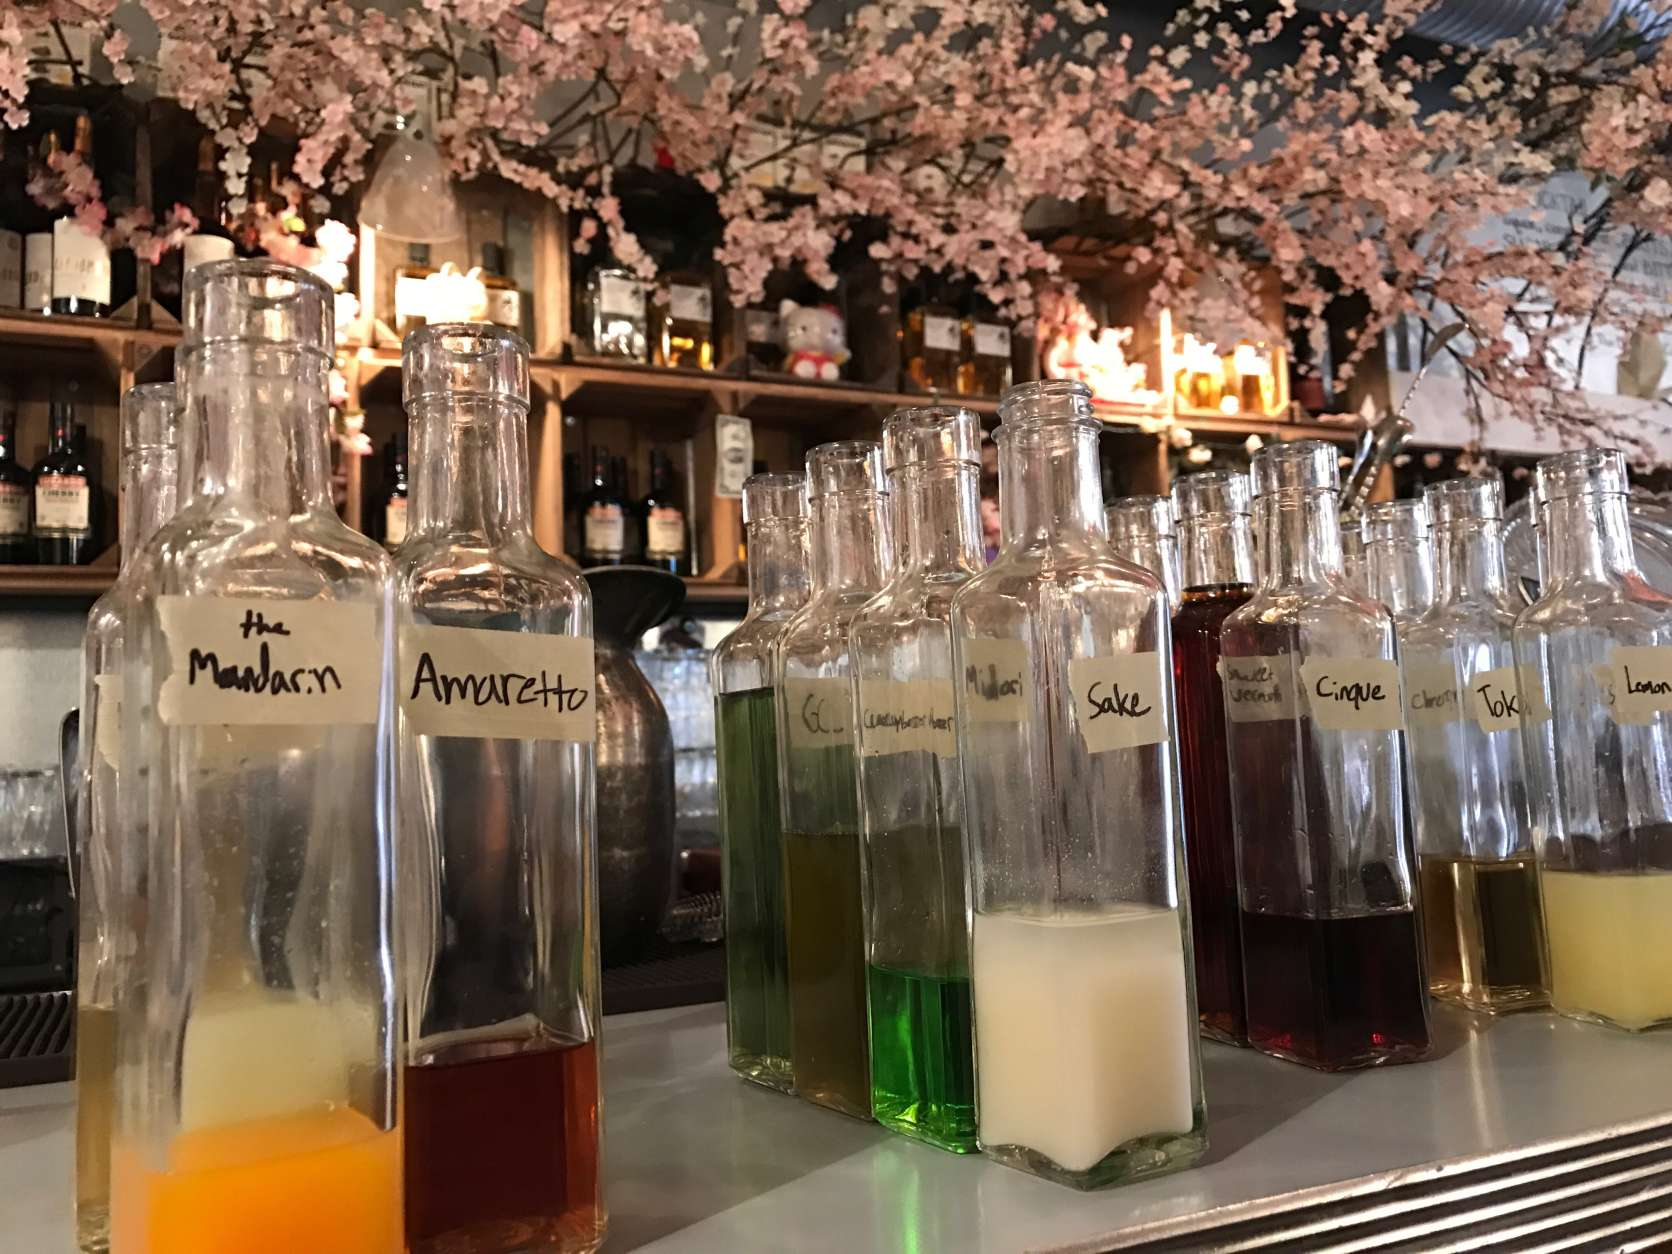 The Japanese-inspired cocktails all are crafted using hand-mixed syrups that have to be made in large batches to accommodate customer demand. (WTOP/Megan Cloherty)